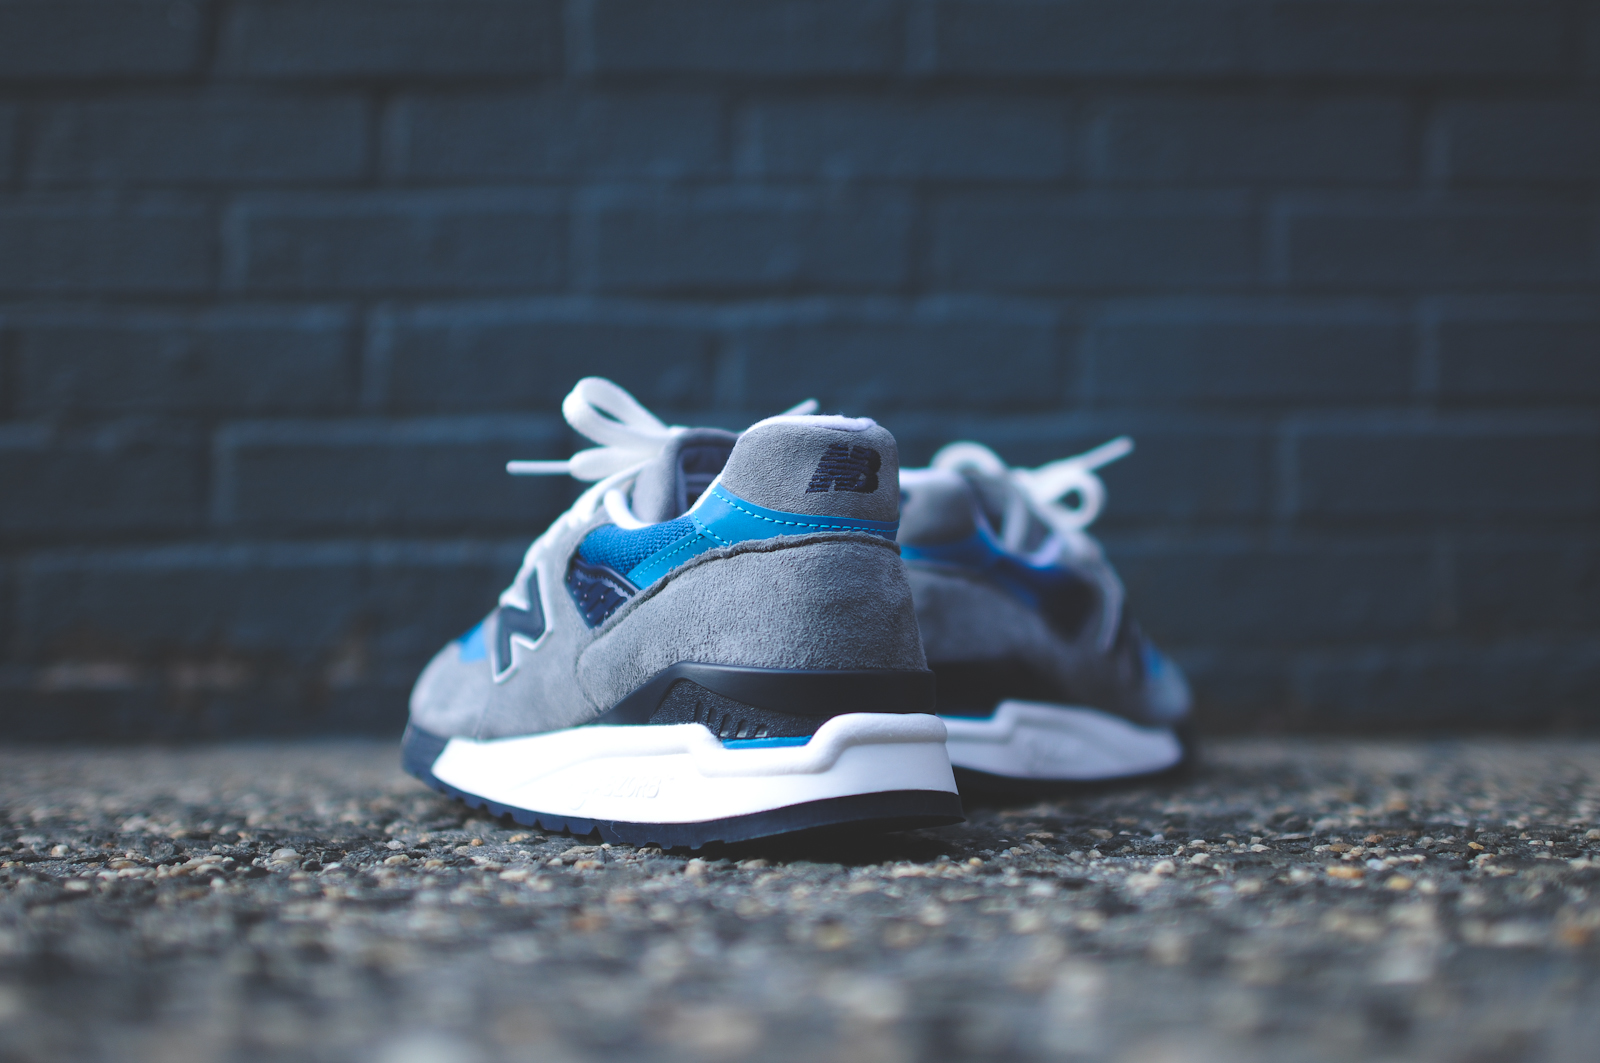 New-Balance-998-Authors-Moby-Dick-4